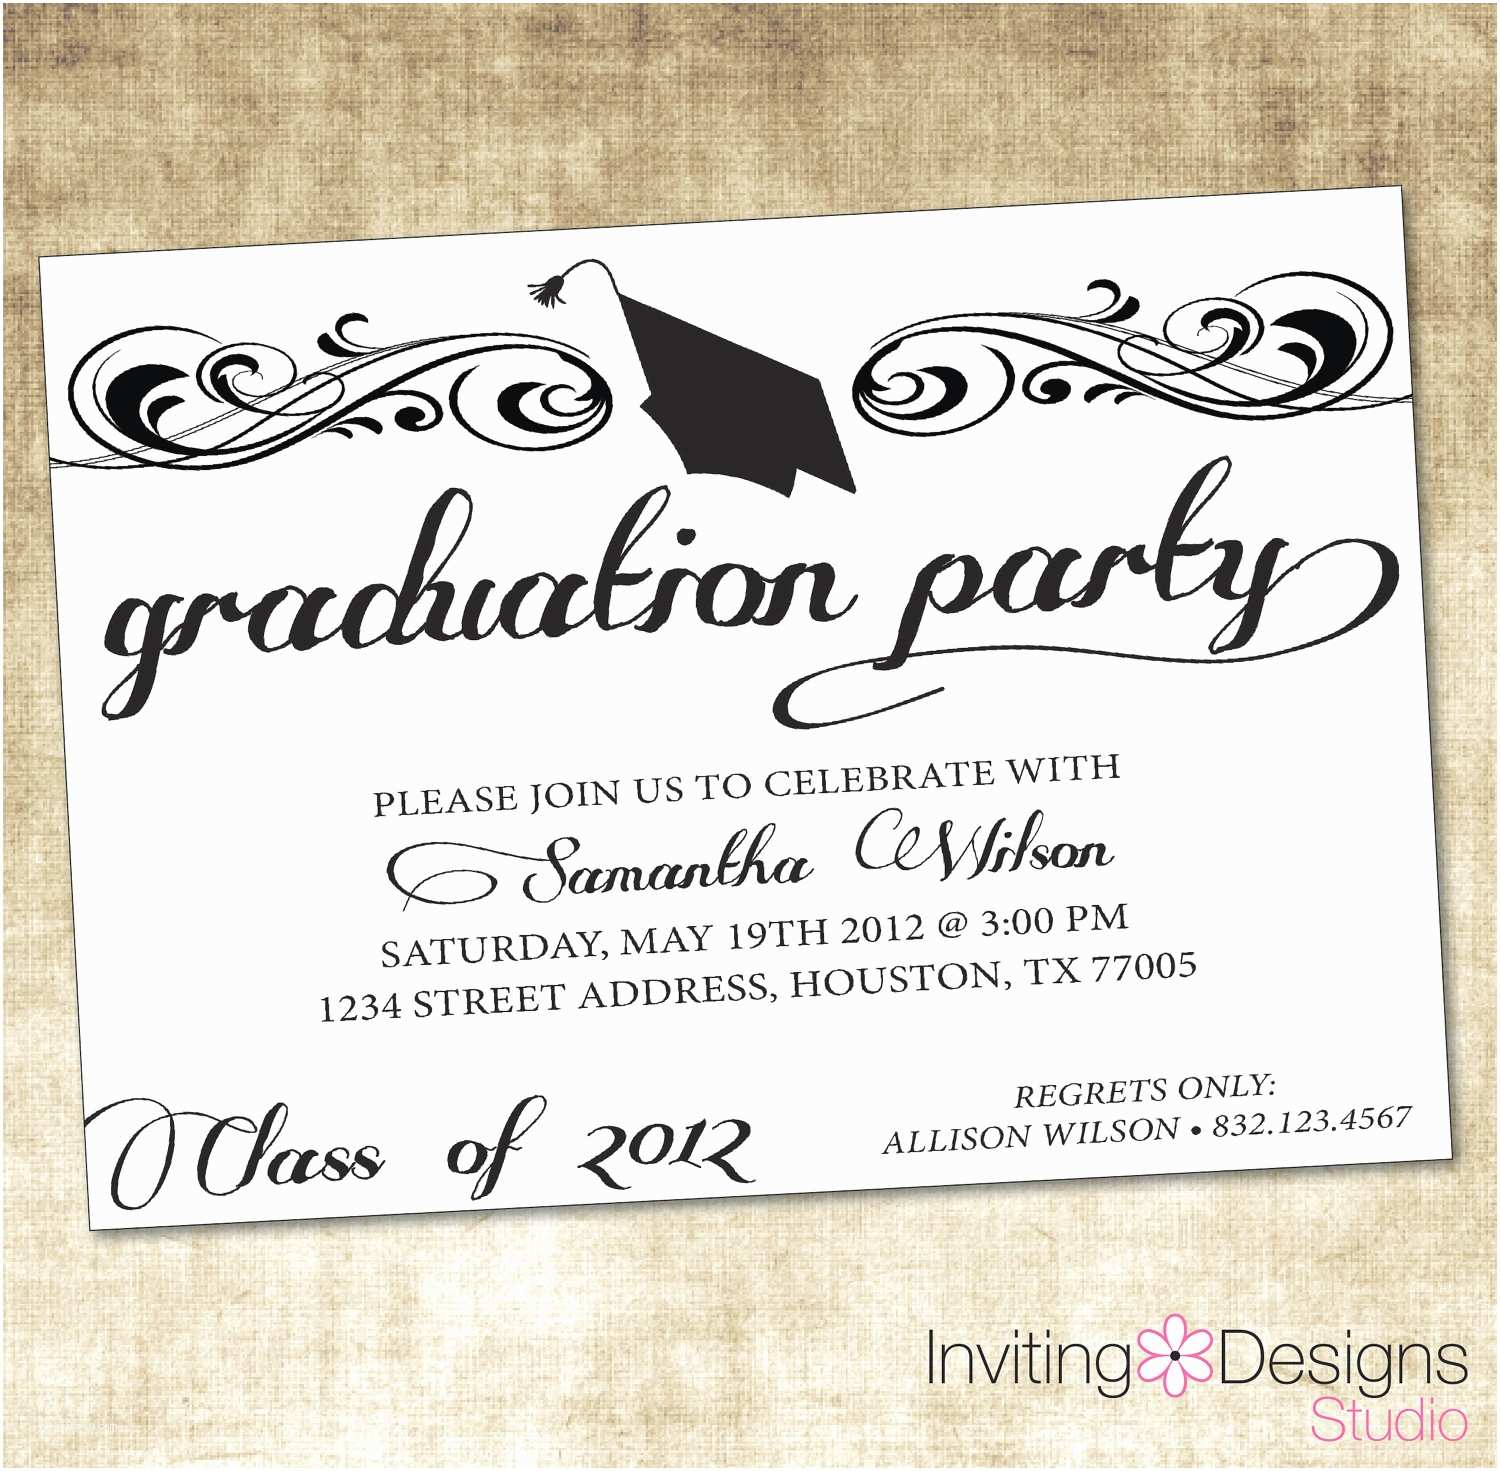 Grad Party Invites Unique Ideas for College Graduation Party Invitations